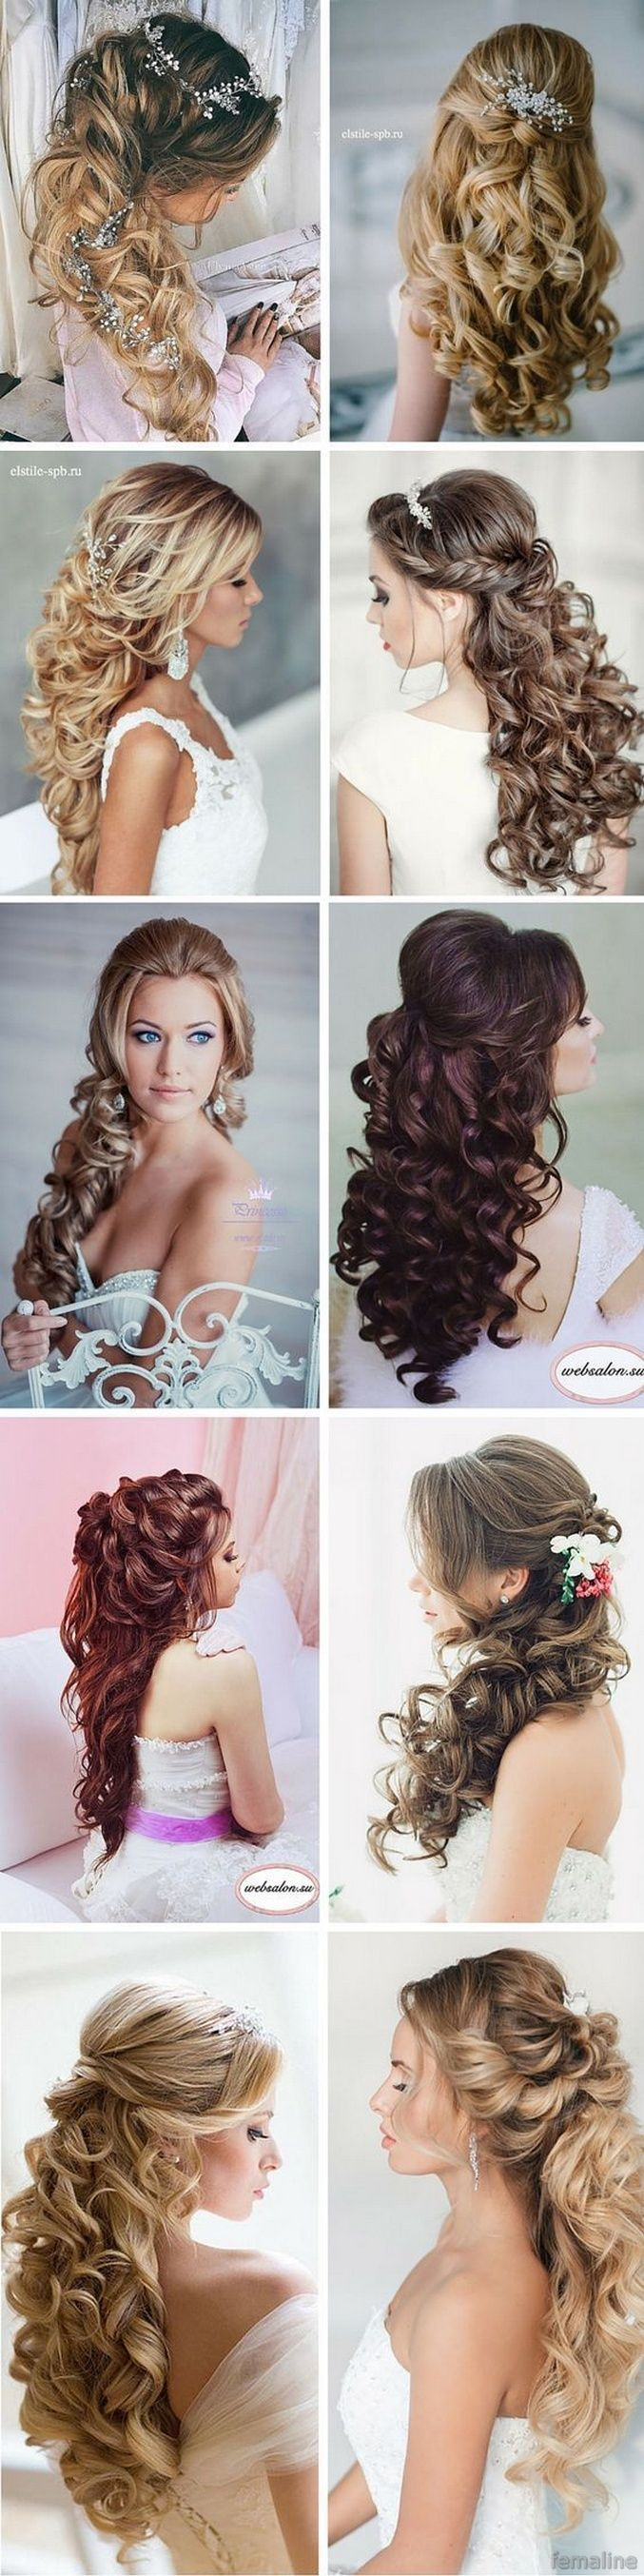 Wedding hairstyle curly and fashionable yes in trend try now uc